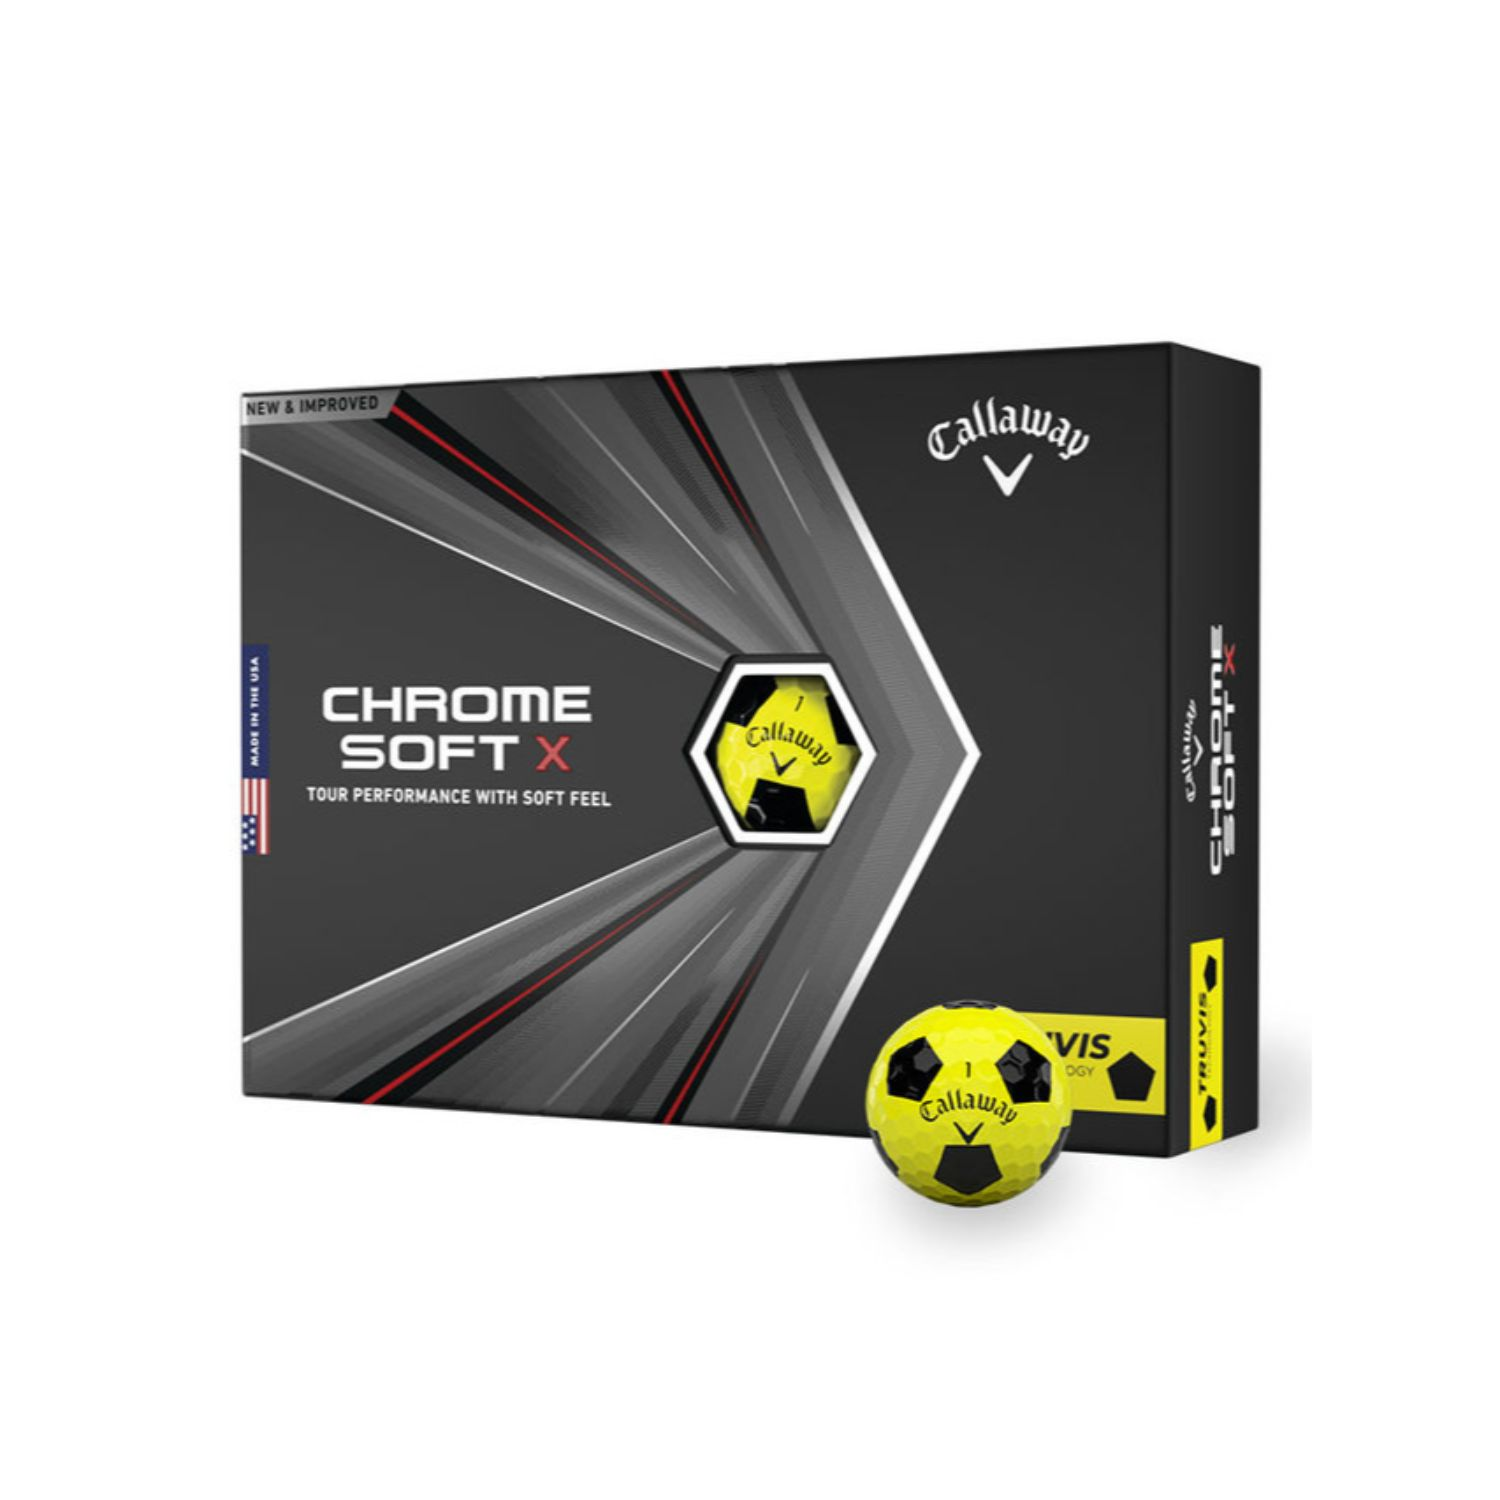 Callaway Chrome Soft X 2020 Golf Balls Truvis Yellow-Black